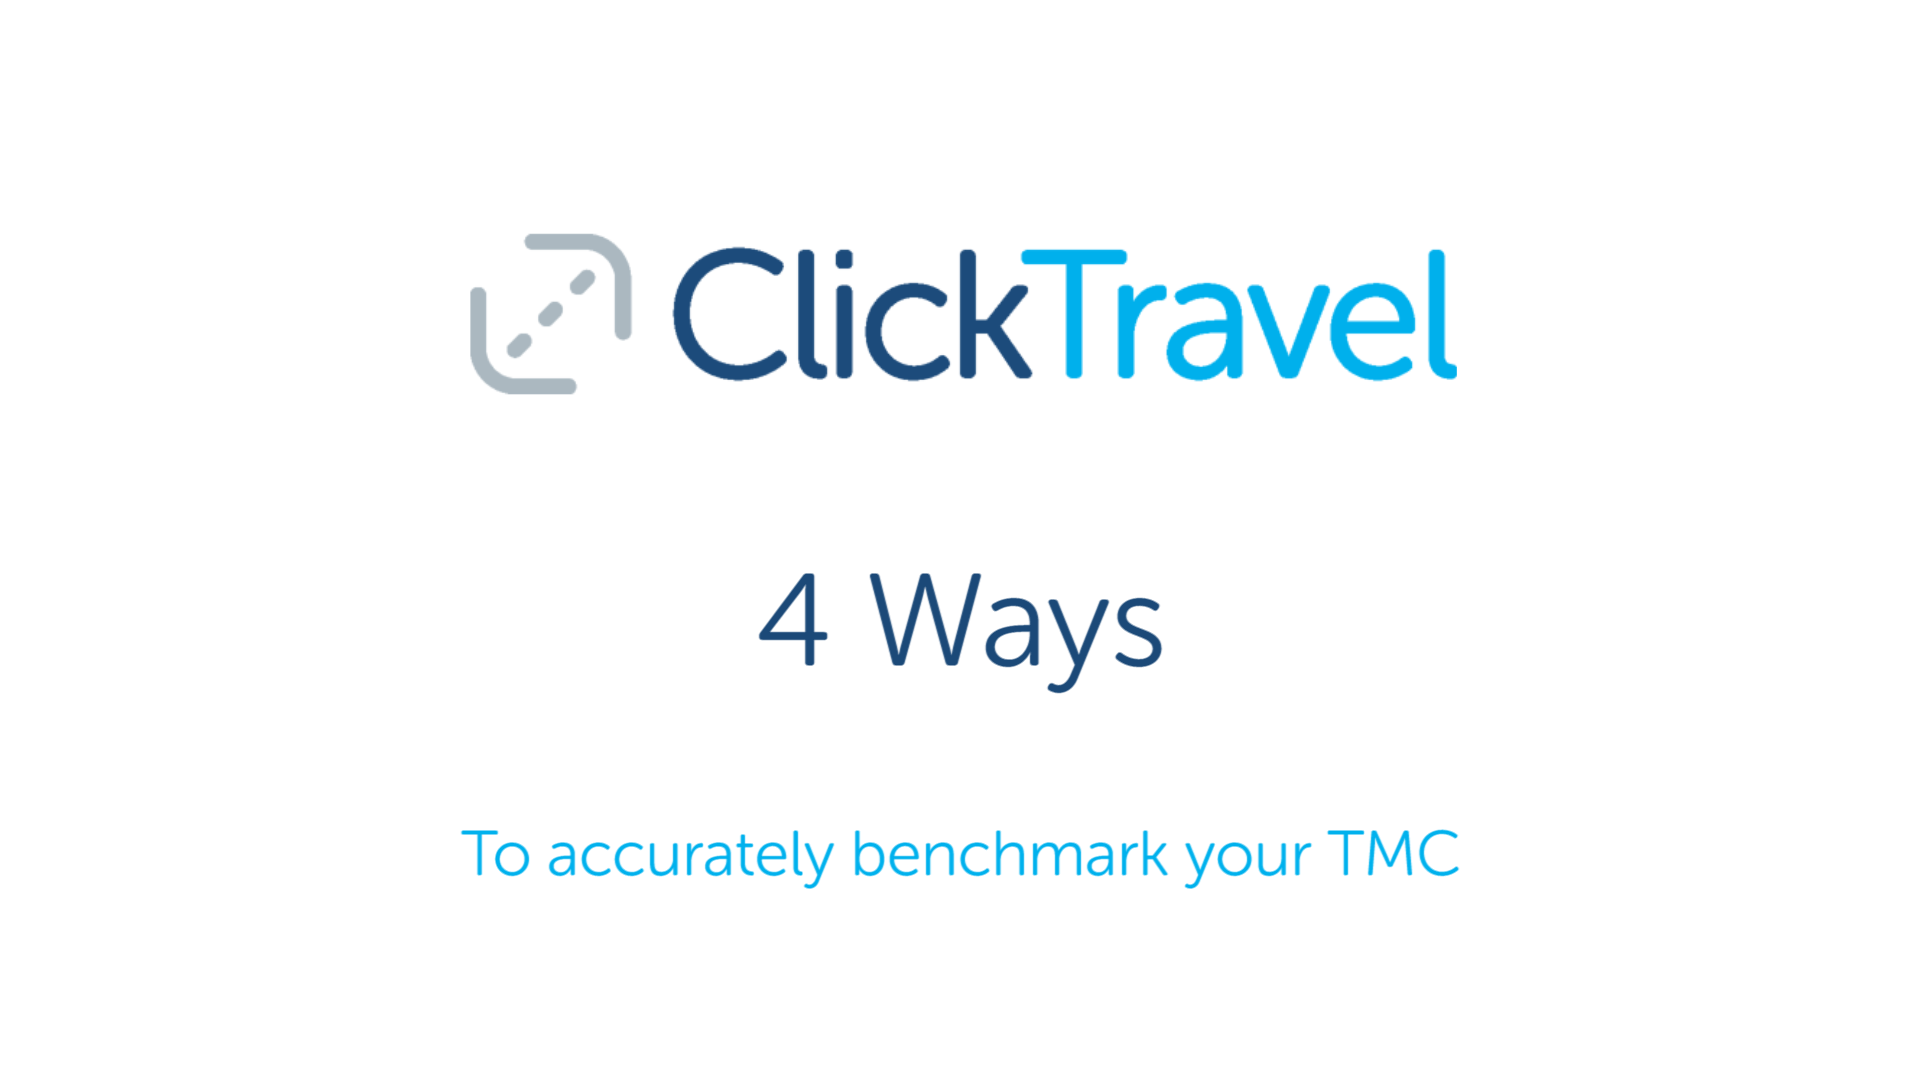 [VIDEO] Expert Advice : 4 Ways to benchmark your TMC